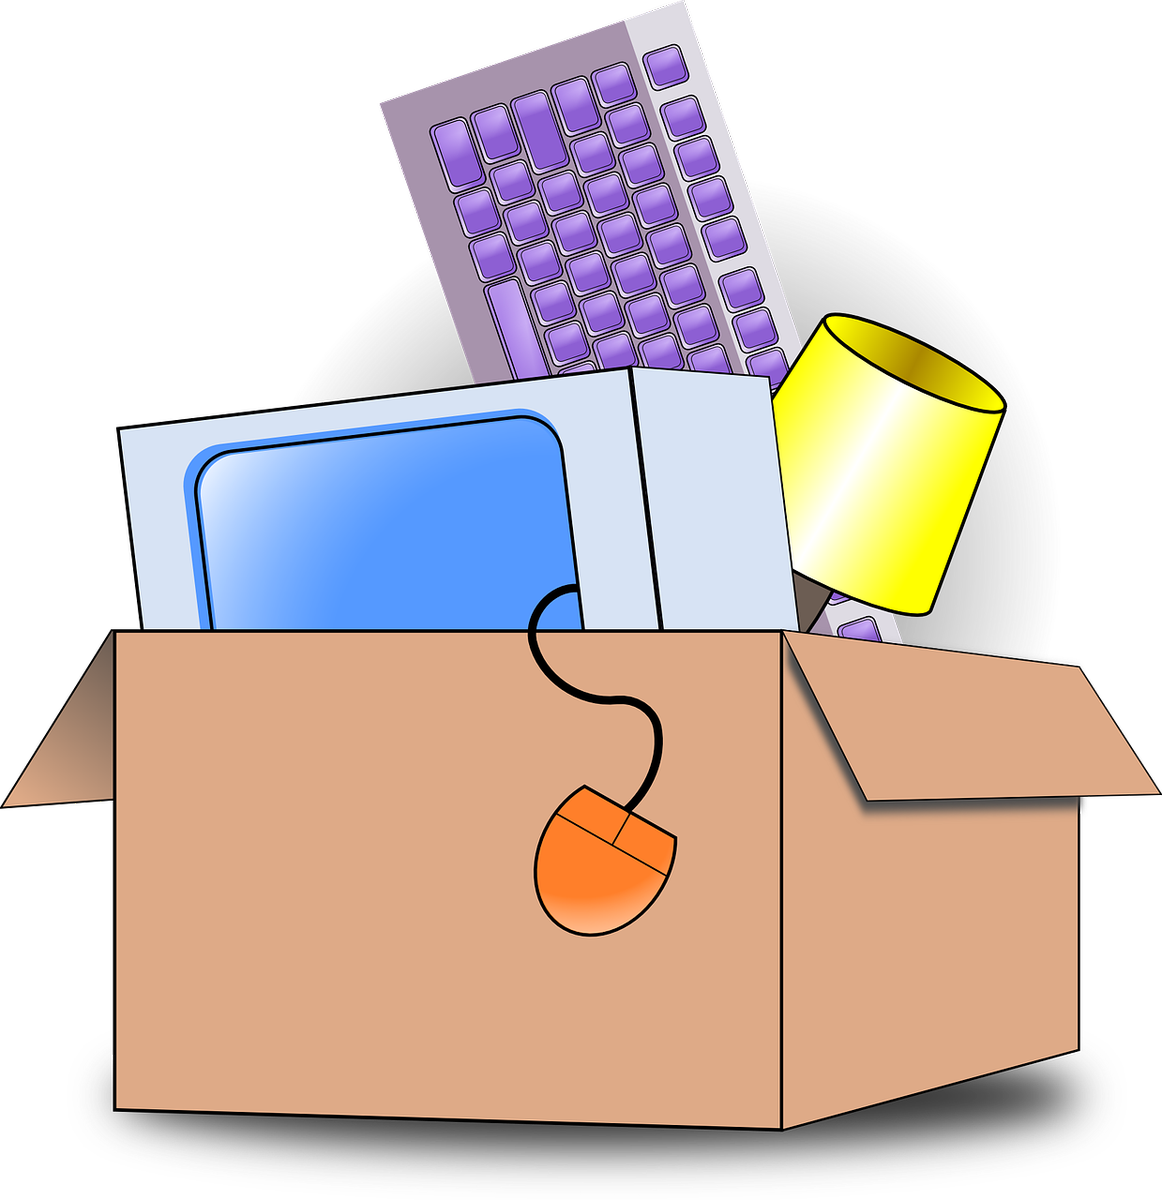 Moving clipart office. Aauw campus aauwcampus twitter